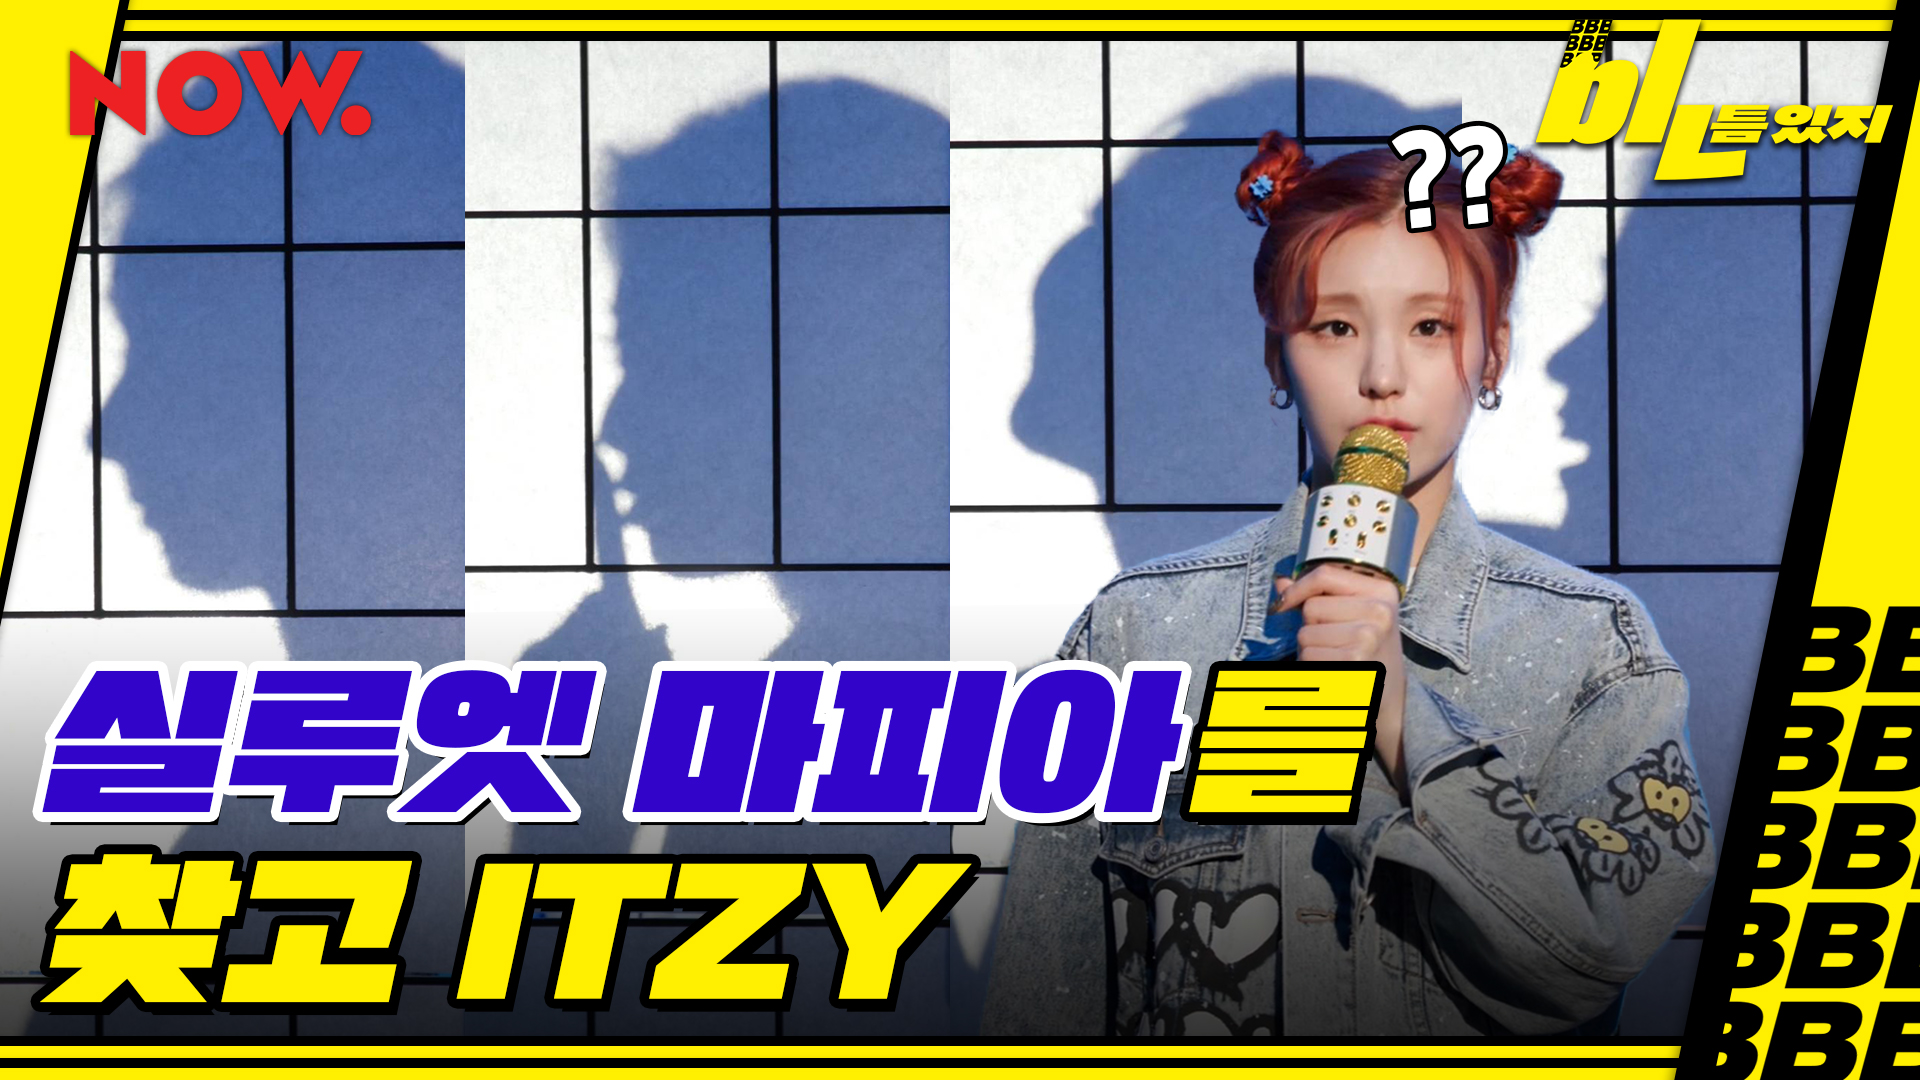 "ITZY(있지) ""bㅣㄴ틈있지"" EP.18 Highlight :Guess who is silhouette 마.피.아."